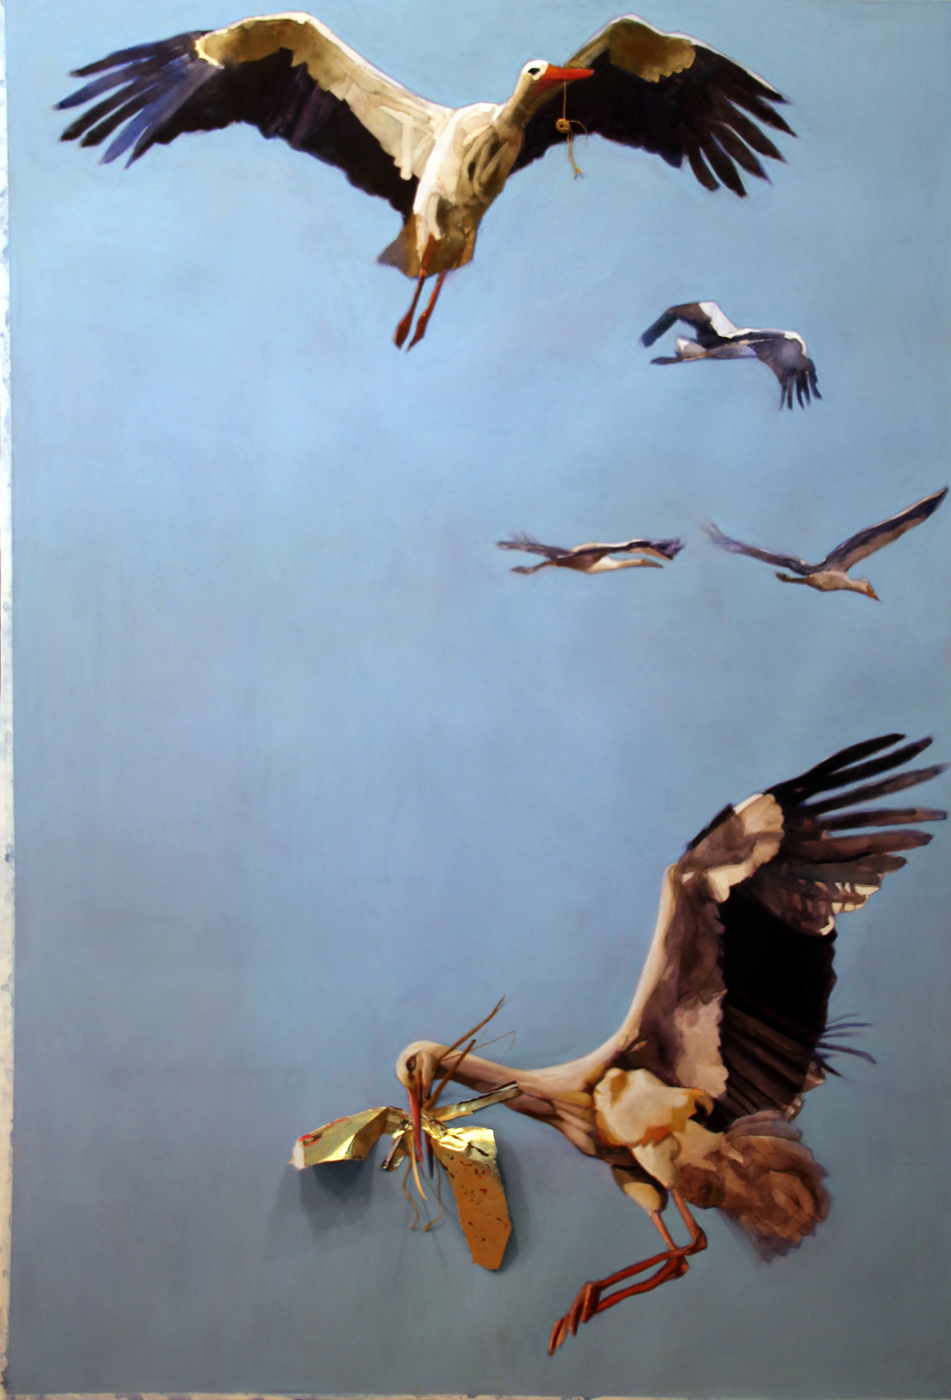 The Storks Come Home to Roost, Panel 9